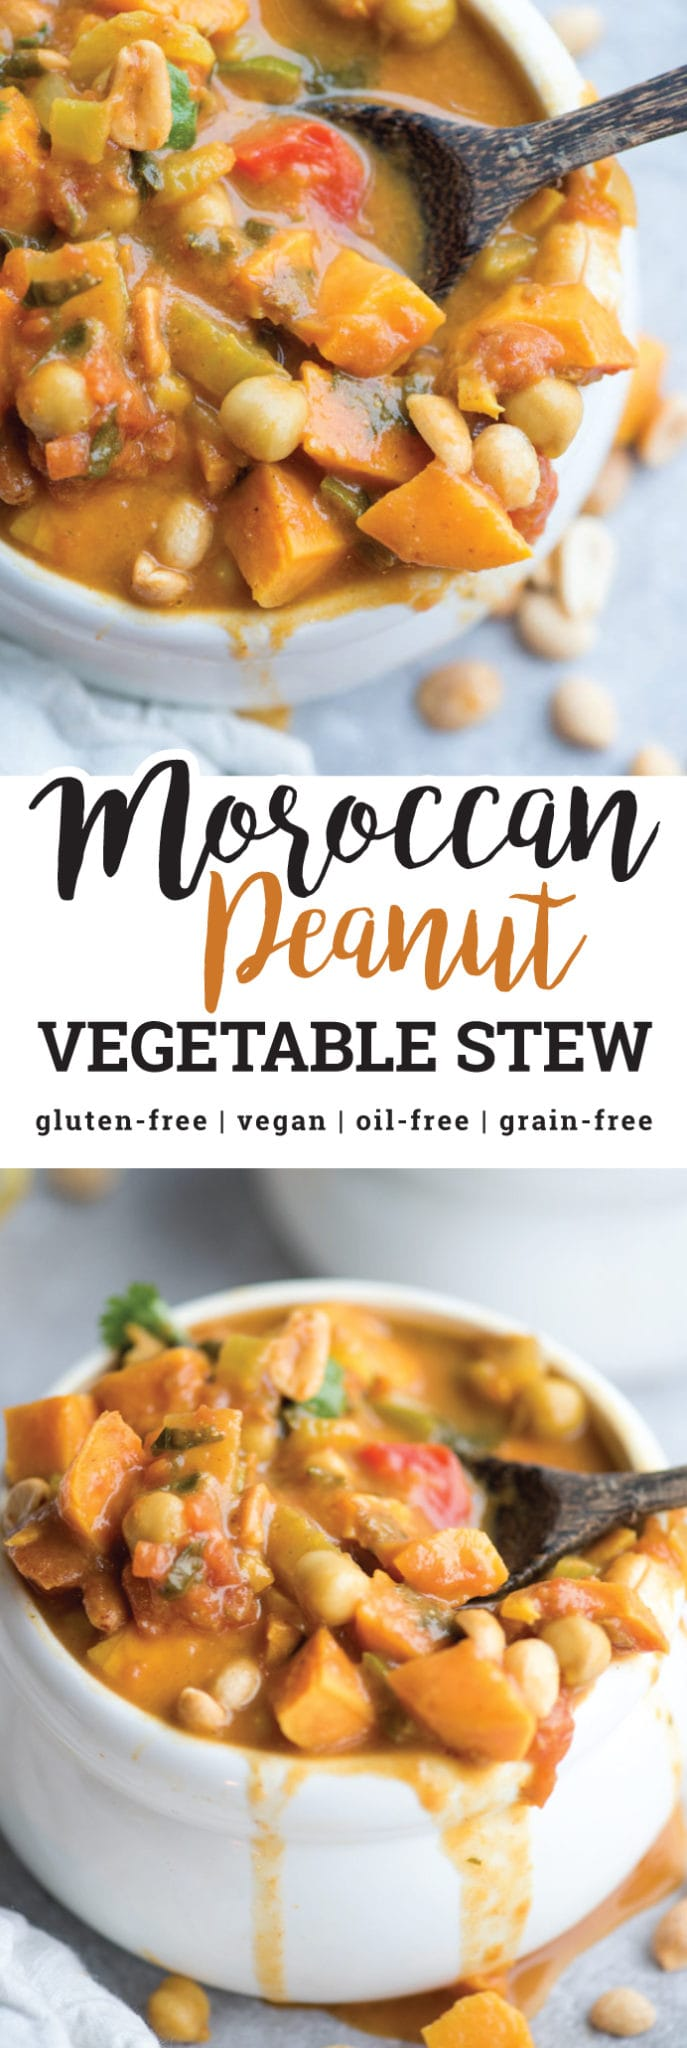 This Moroccan Vegetable Peanut Stew with Sweet Potato is hearty, flavourful and nutritious. It's also naturally vegan and gluten-free and can be made in under 30 minutes in one pot making it perfect for a healthy weeknight dinner.